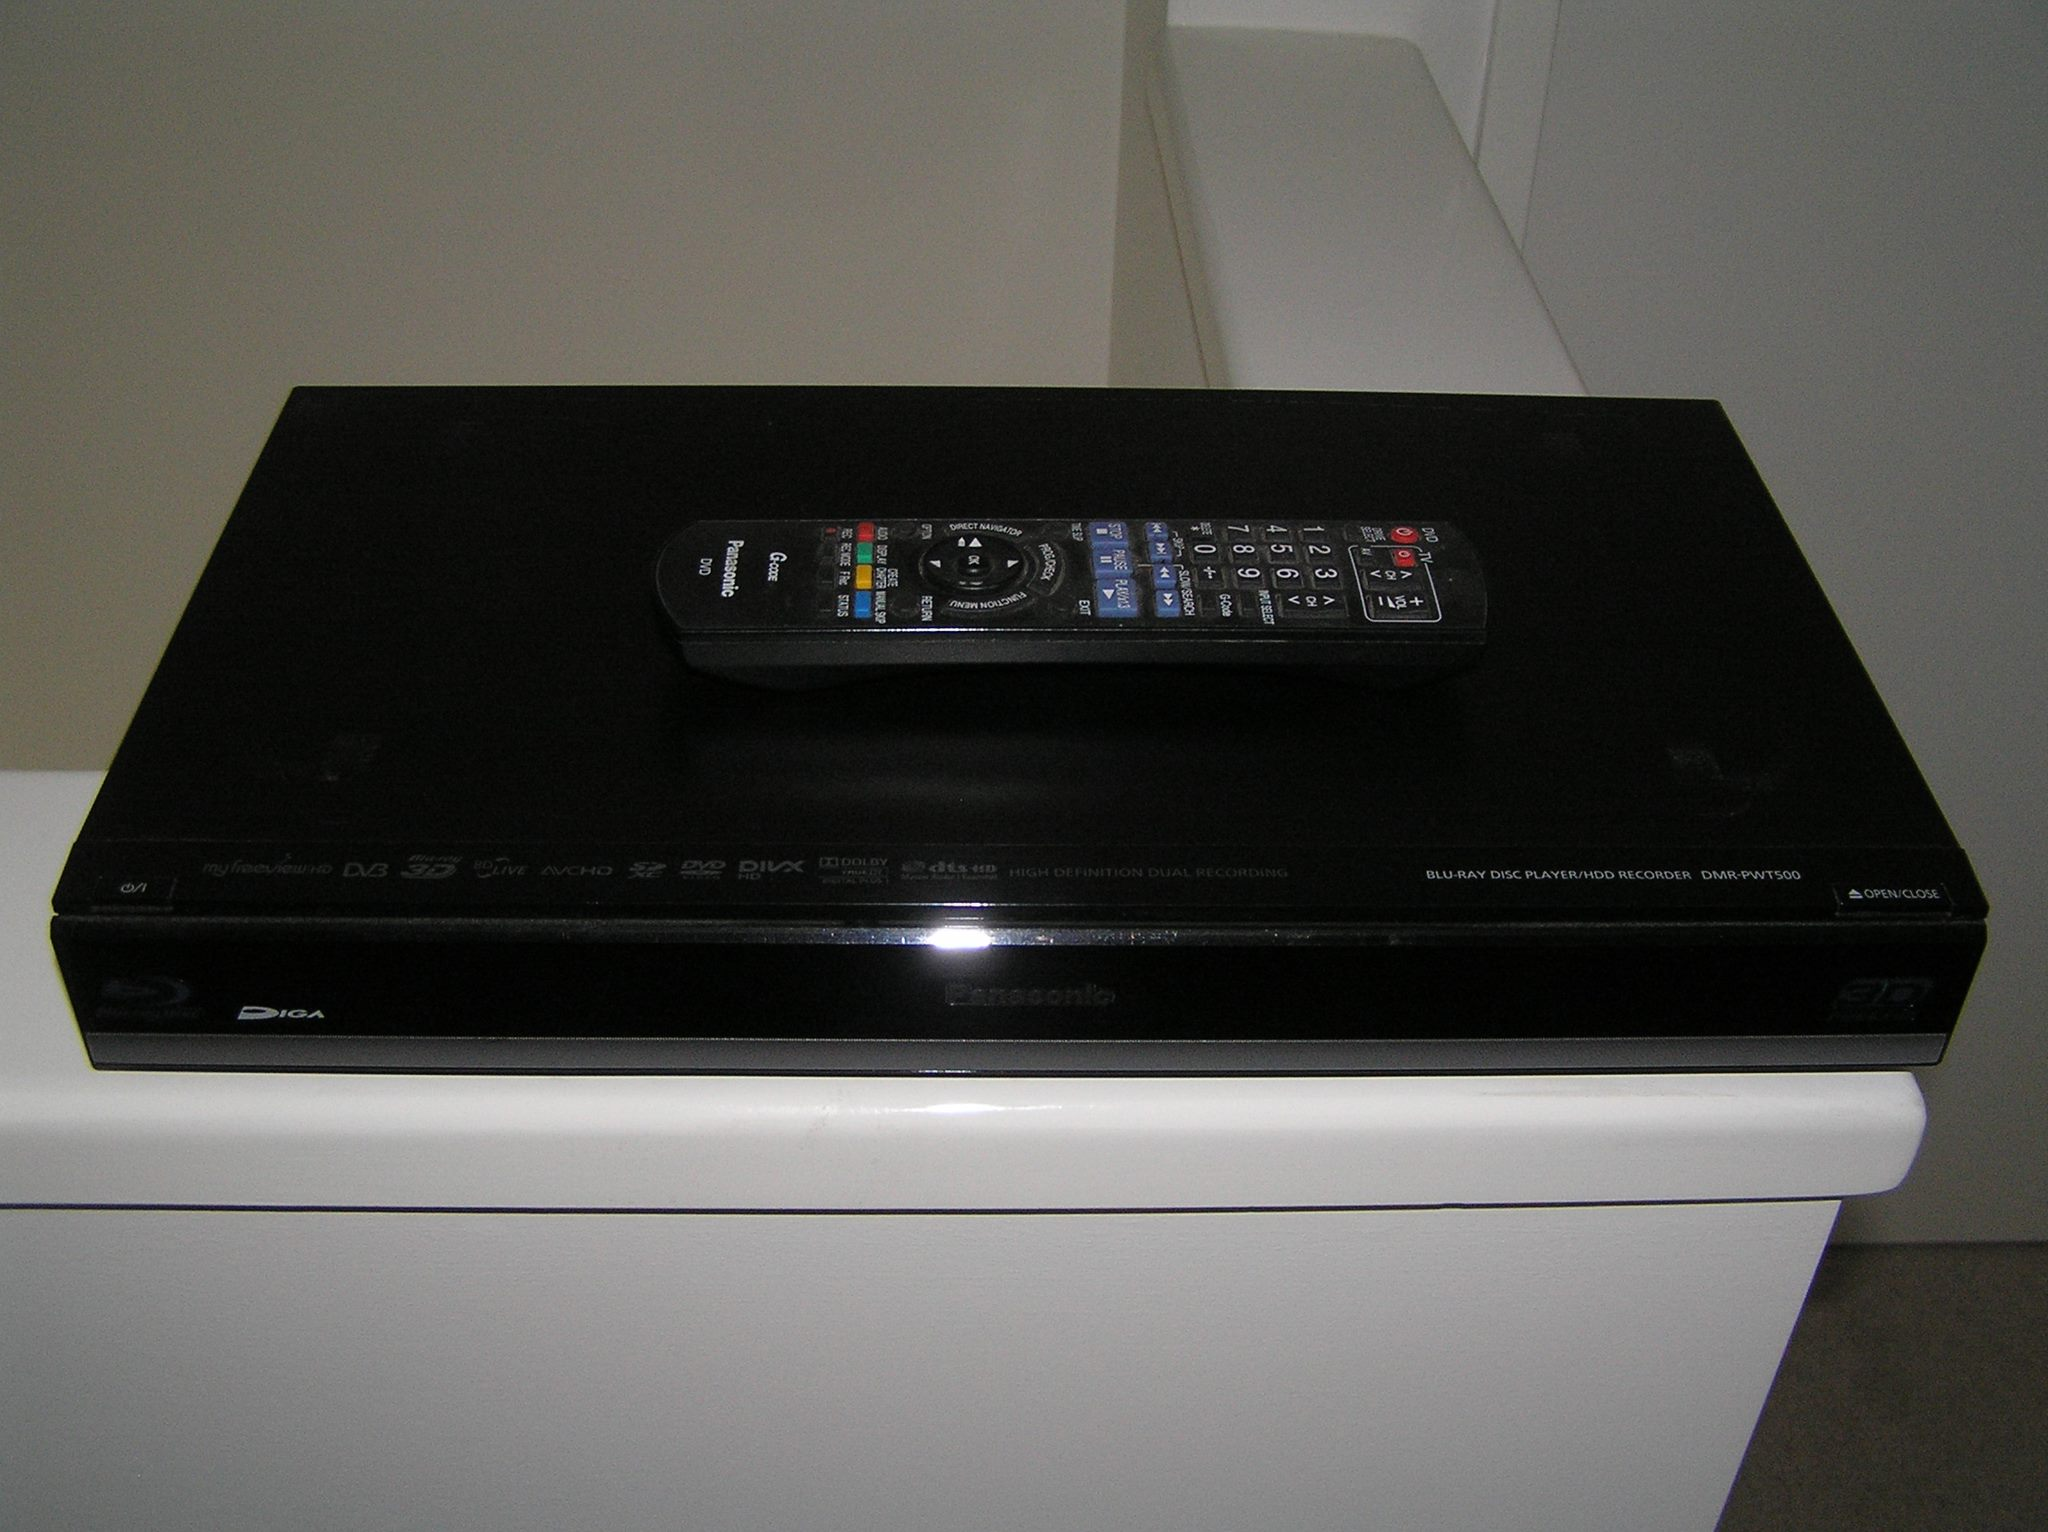 PANASONIC BLUERAY FREEVIEW RECORDER (TERRESTRIAL) | Trade Me